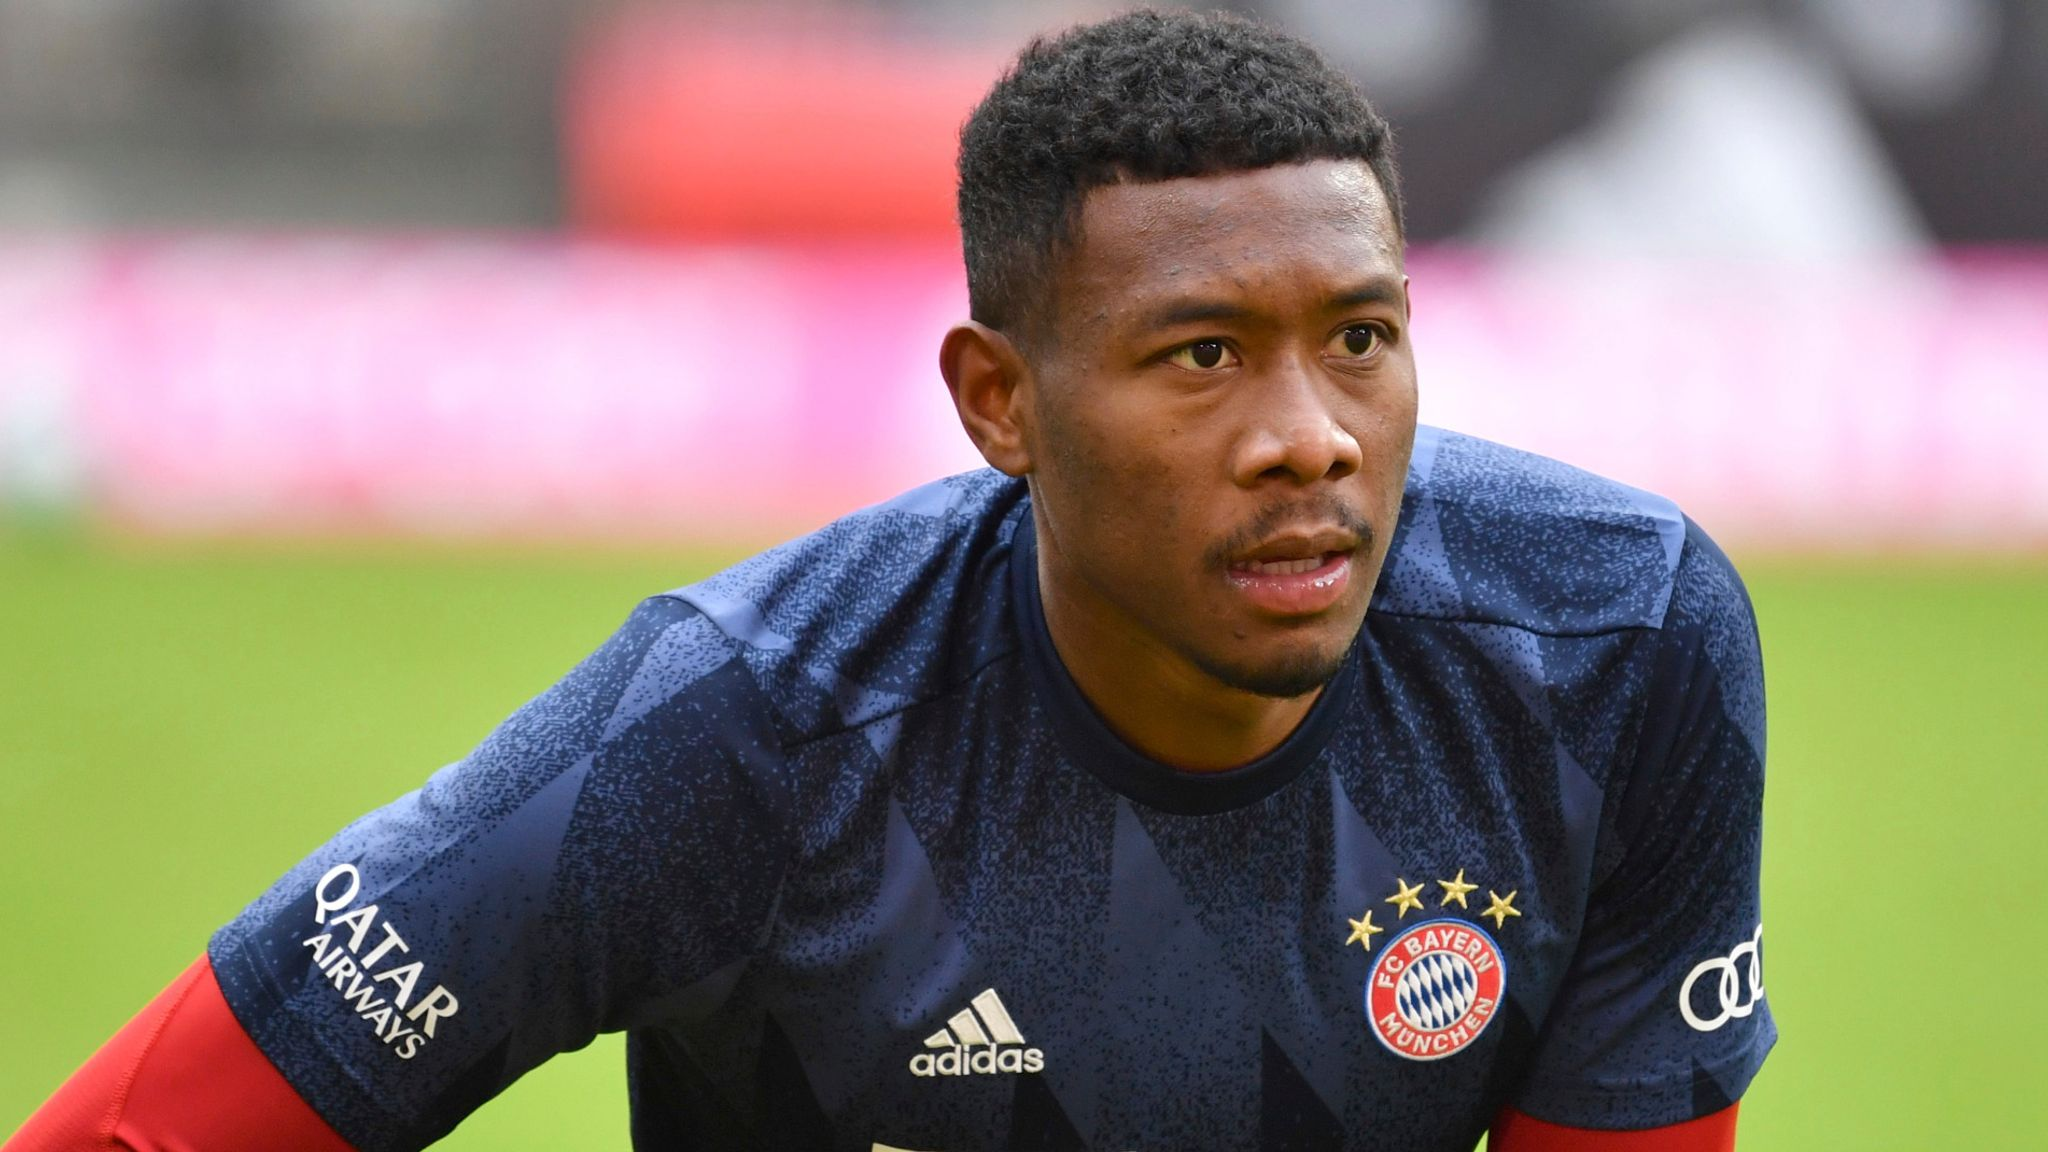 David Alaba: Real Madrid confirm signing of Bayern Munich defender on  five-year contract | Football News | Sky Sports